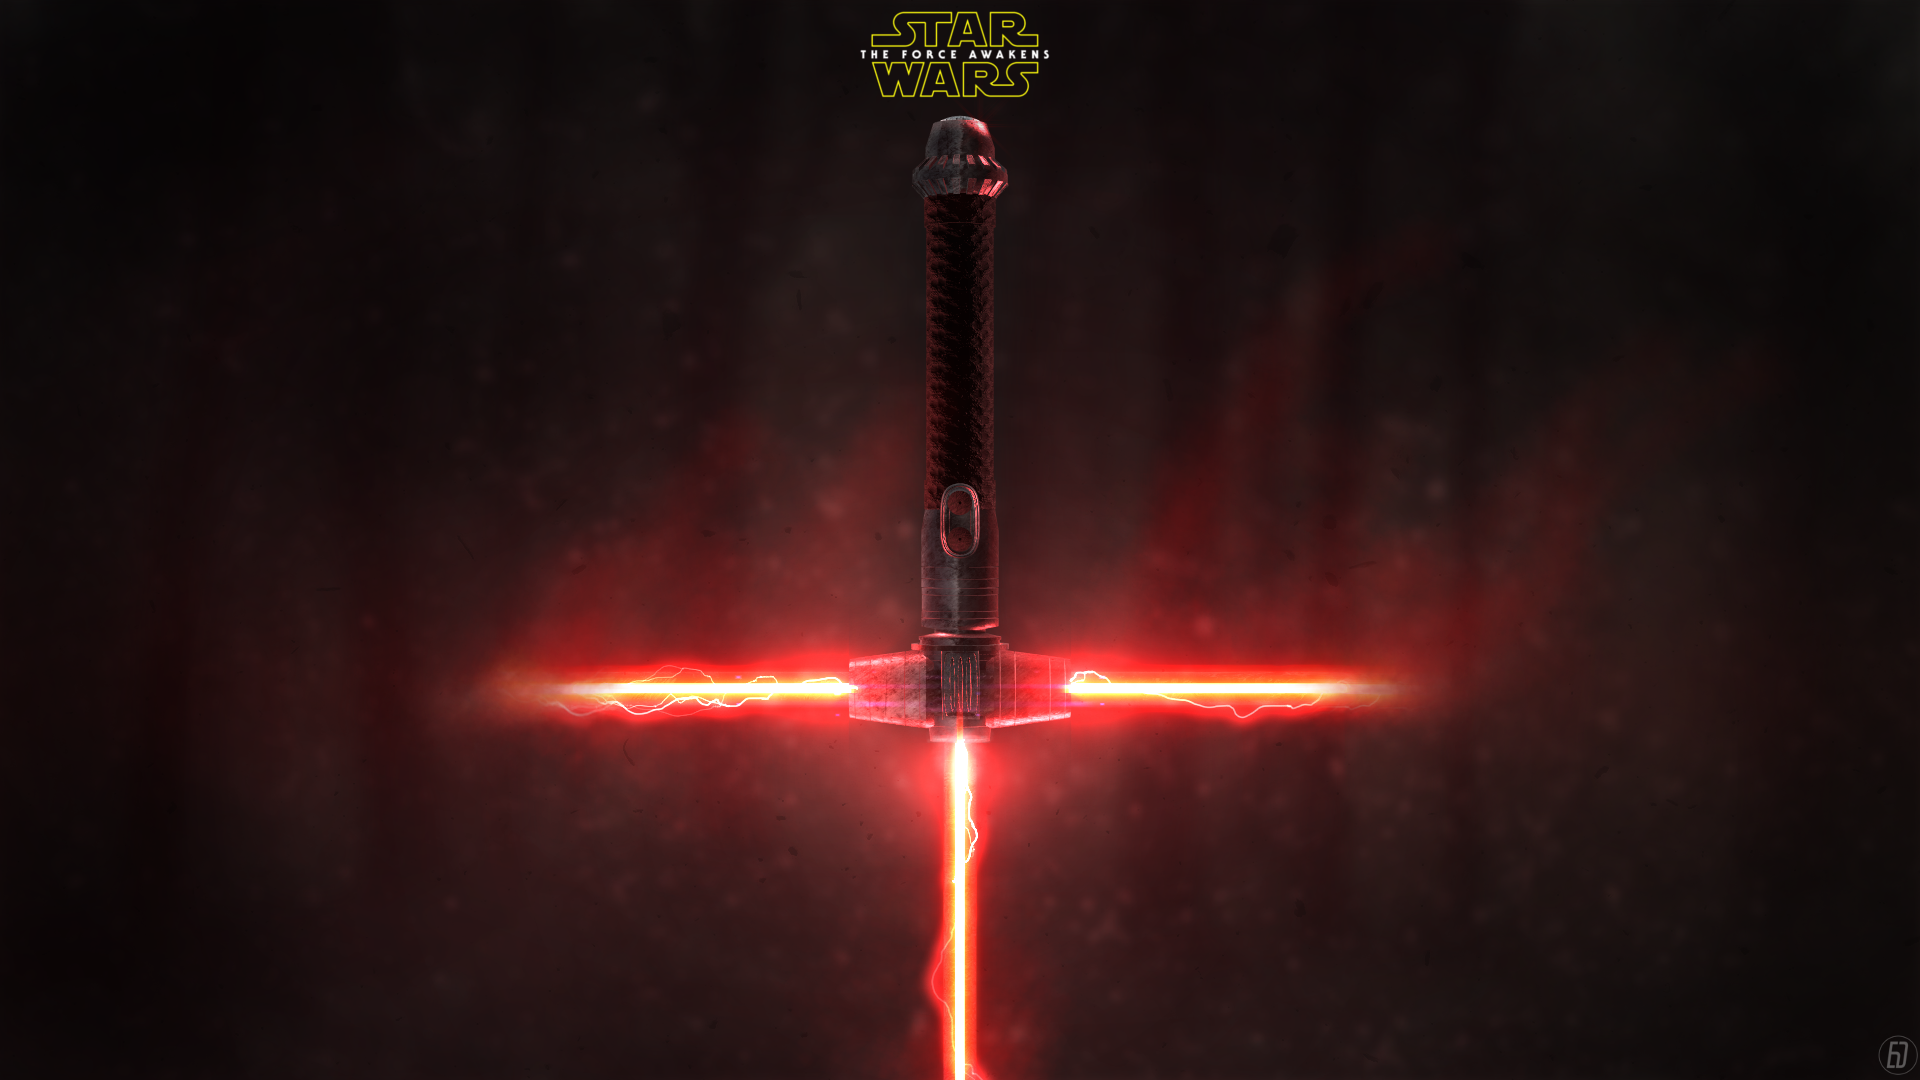 star-wars-light saber-wallpaper